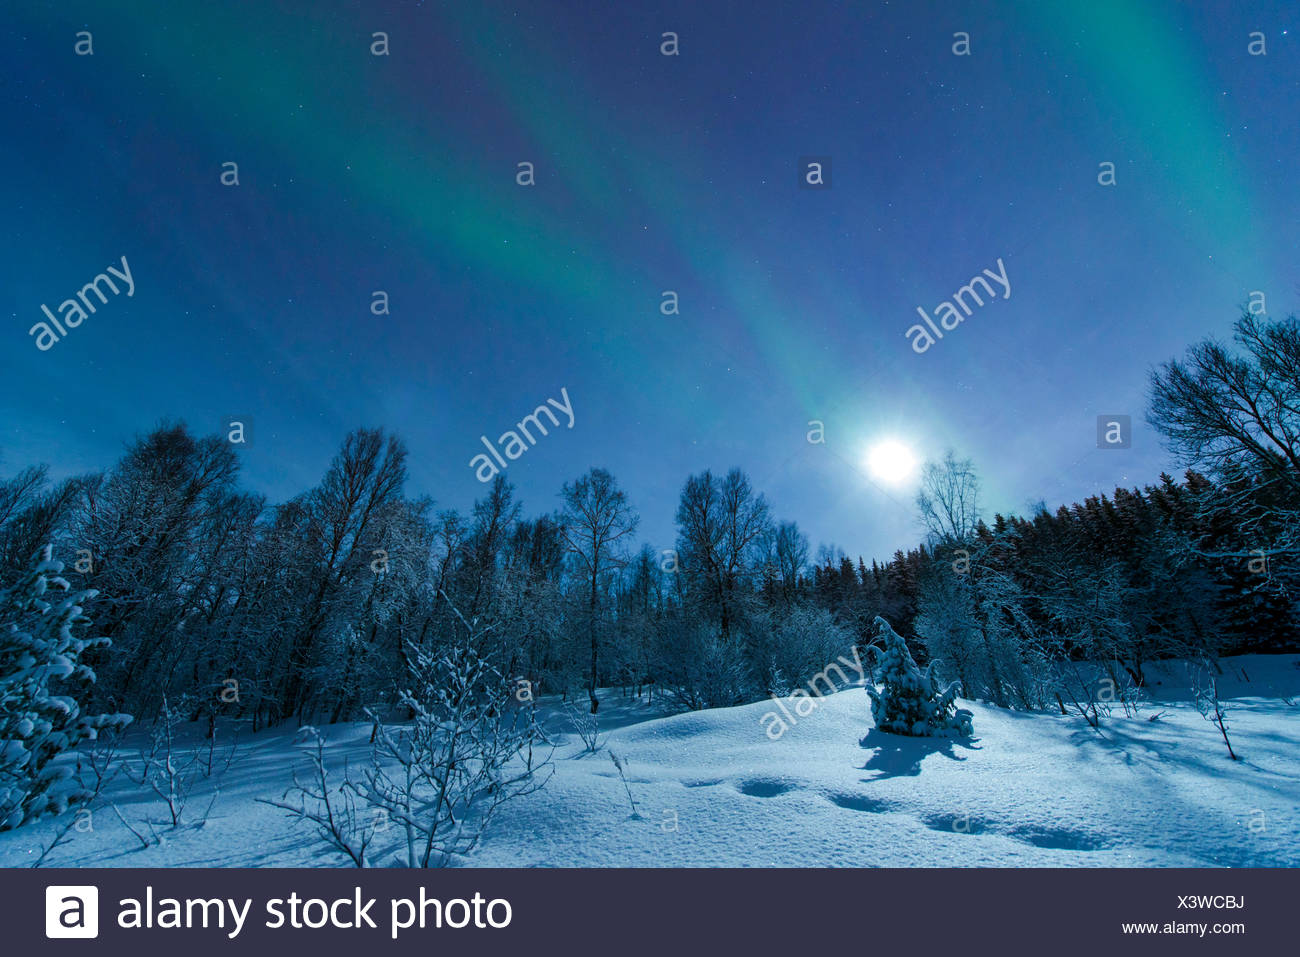 aurora with moon above snowy forest scenery, Norway, Troms, Tromsoe Stock Photo